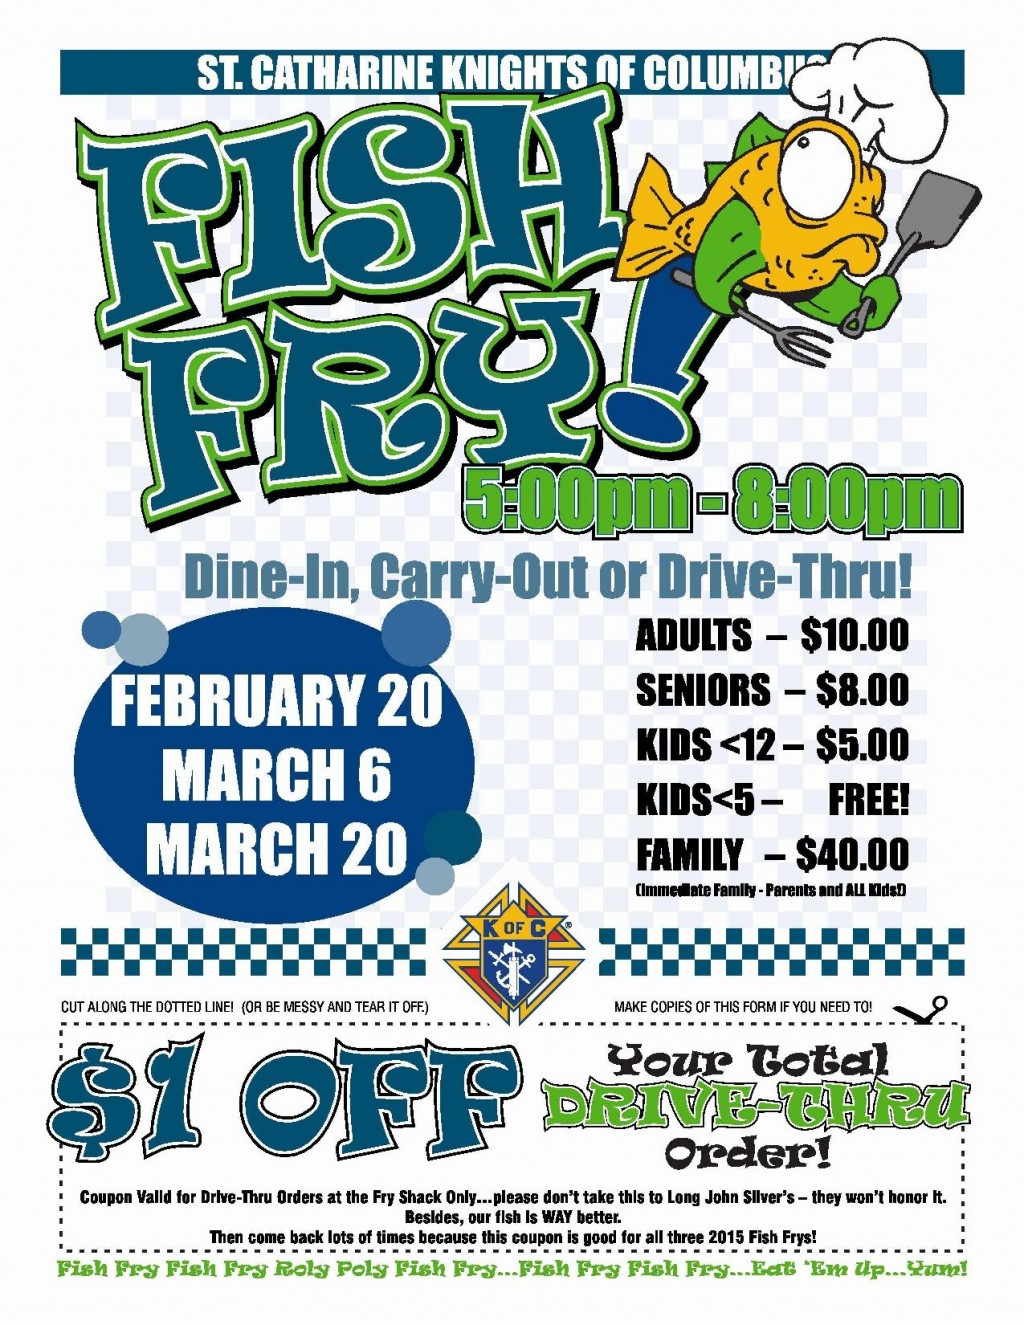 004 Impressive Fish Fry Flyer Template Picture  Printable Free Powerpoint PsdLarge